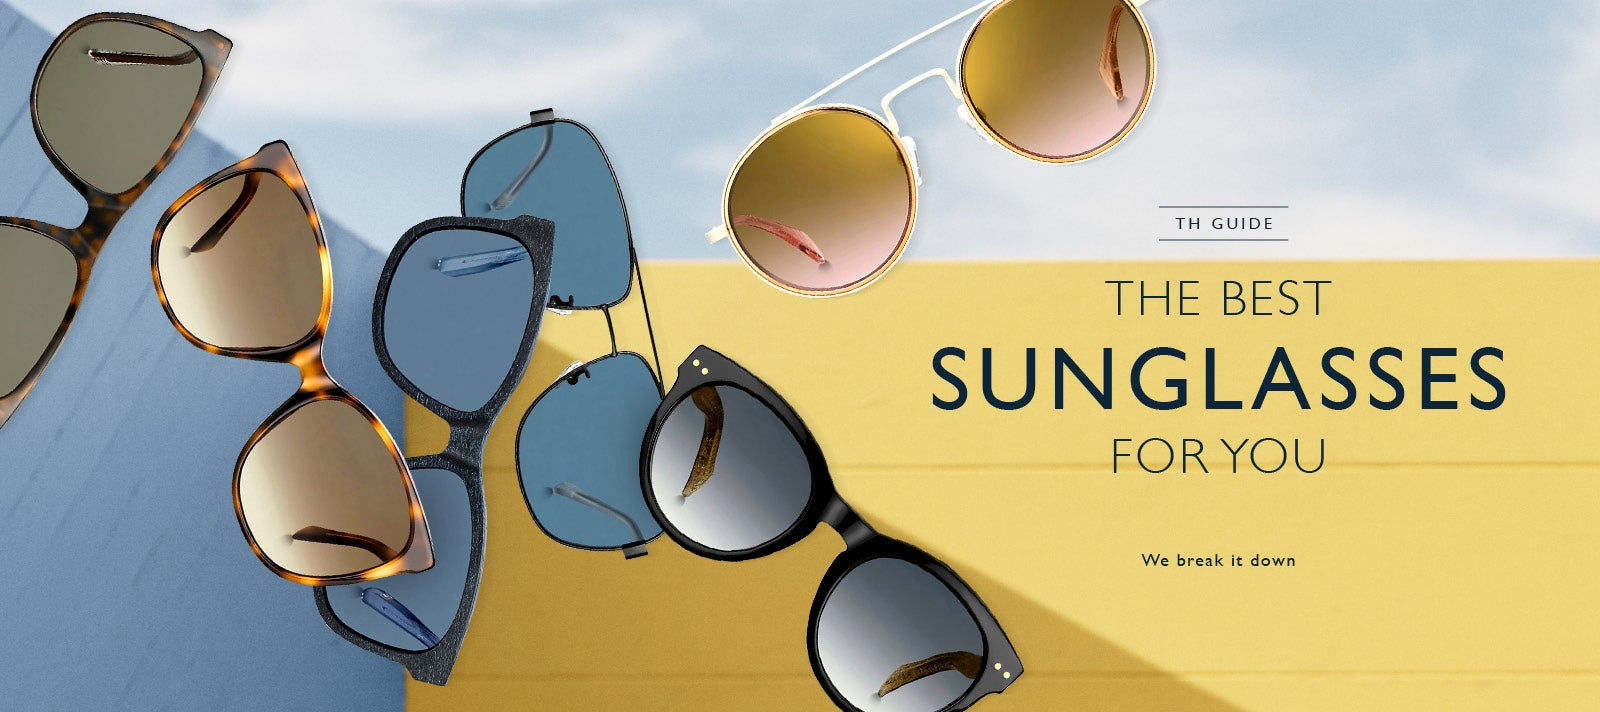 An assortment of Tommy Hilfiger sunglasses in a variety of lens shades and shapes.